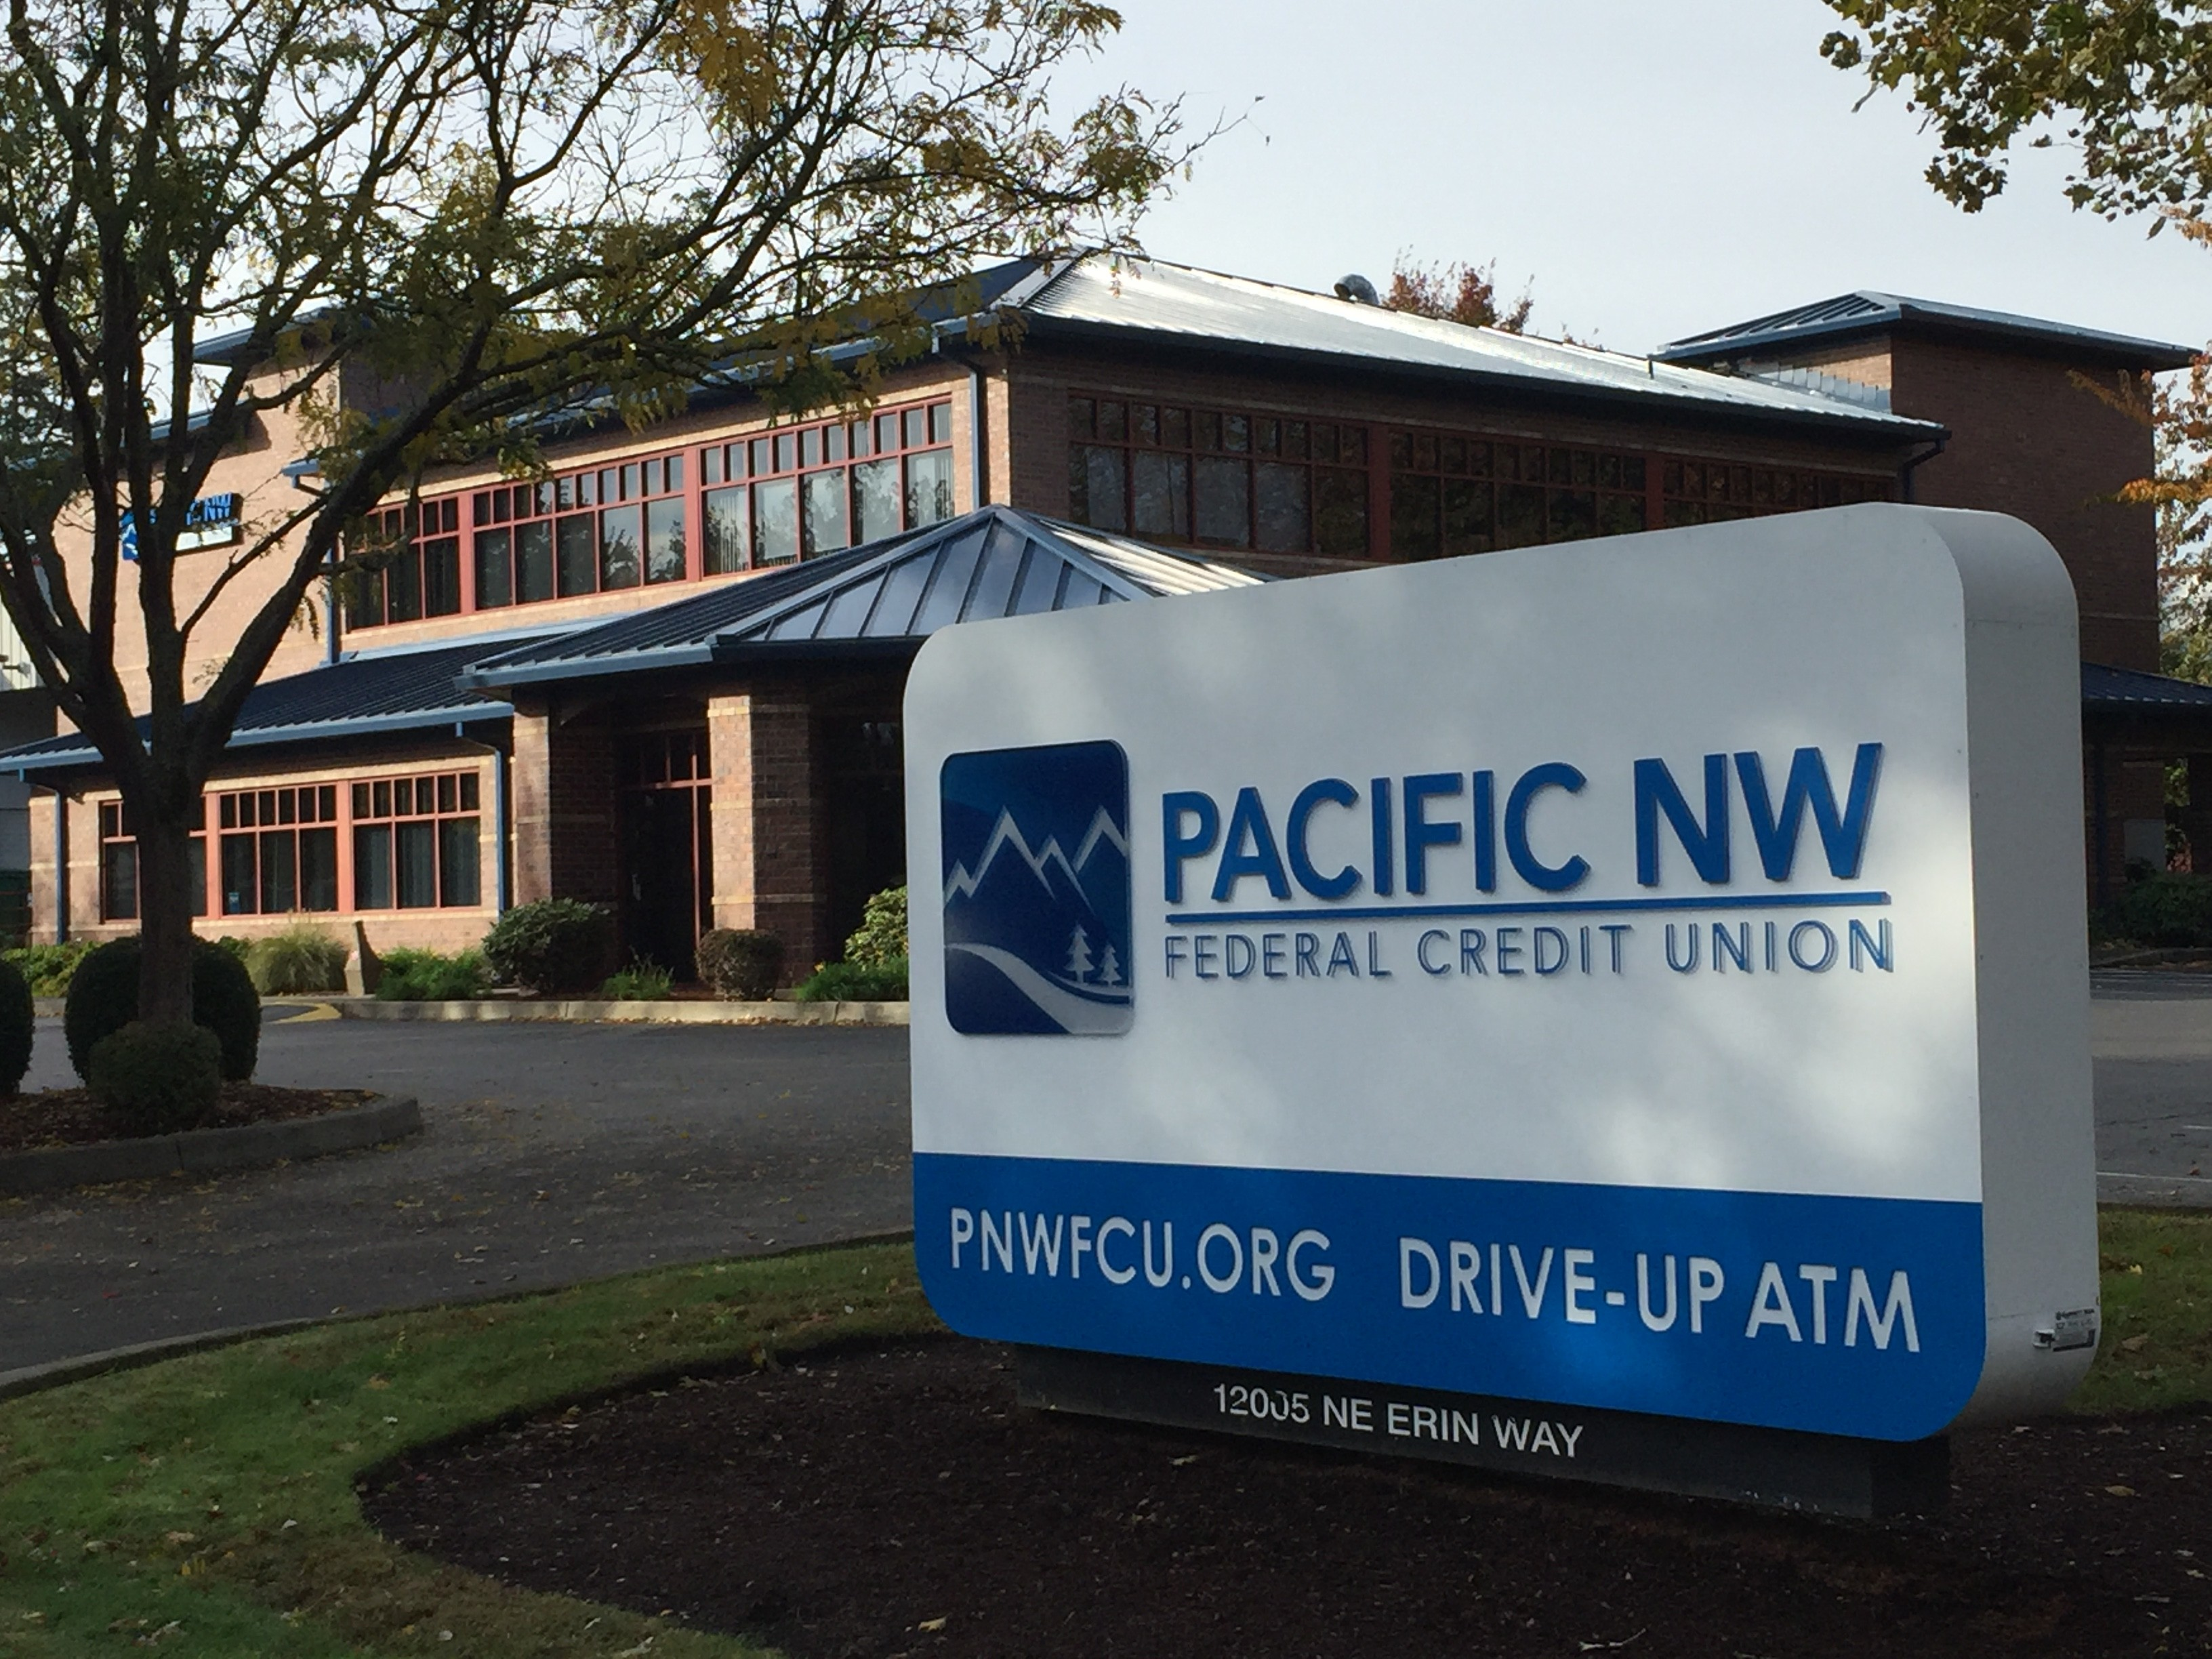 Nw Federal Credit Union >> Pacific Nw Federal Credit Union Linkedin